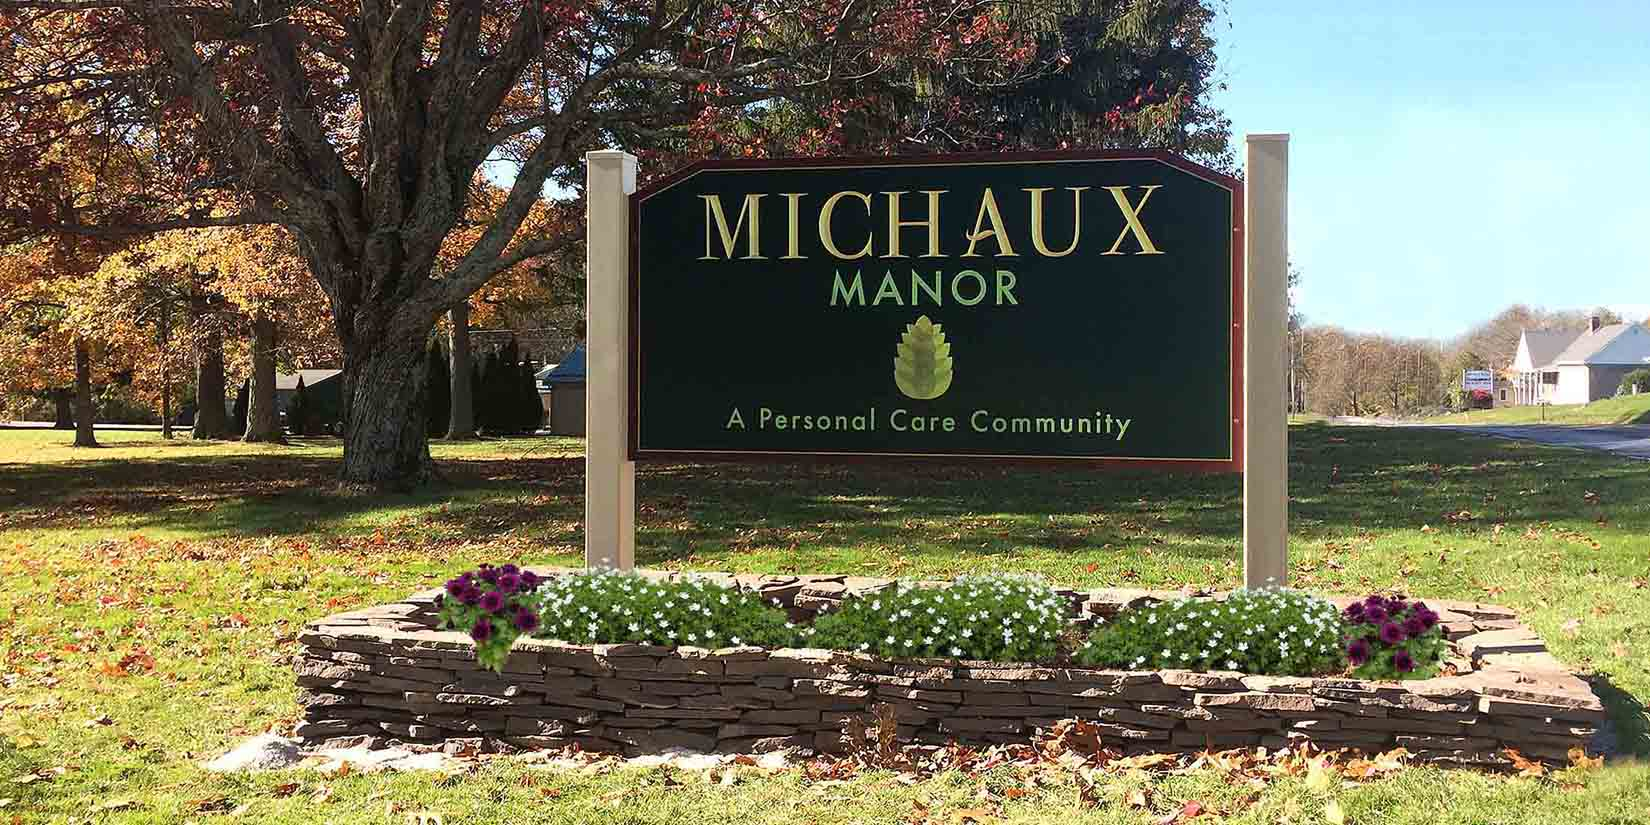 Michaux Manor